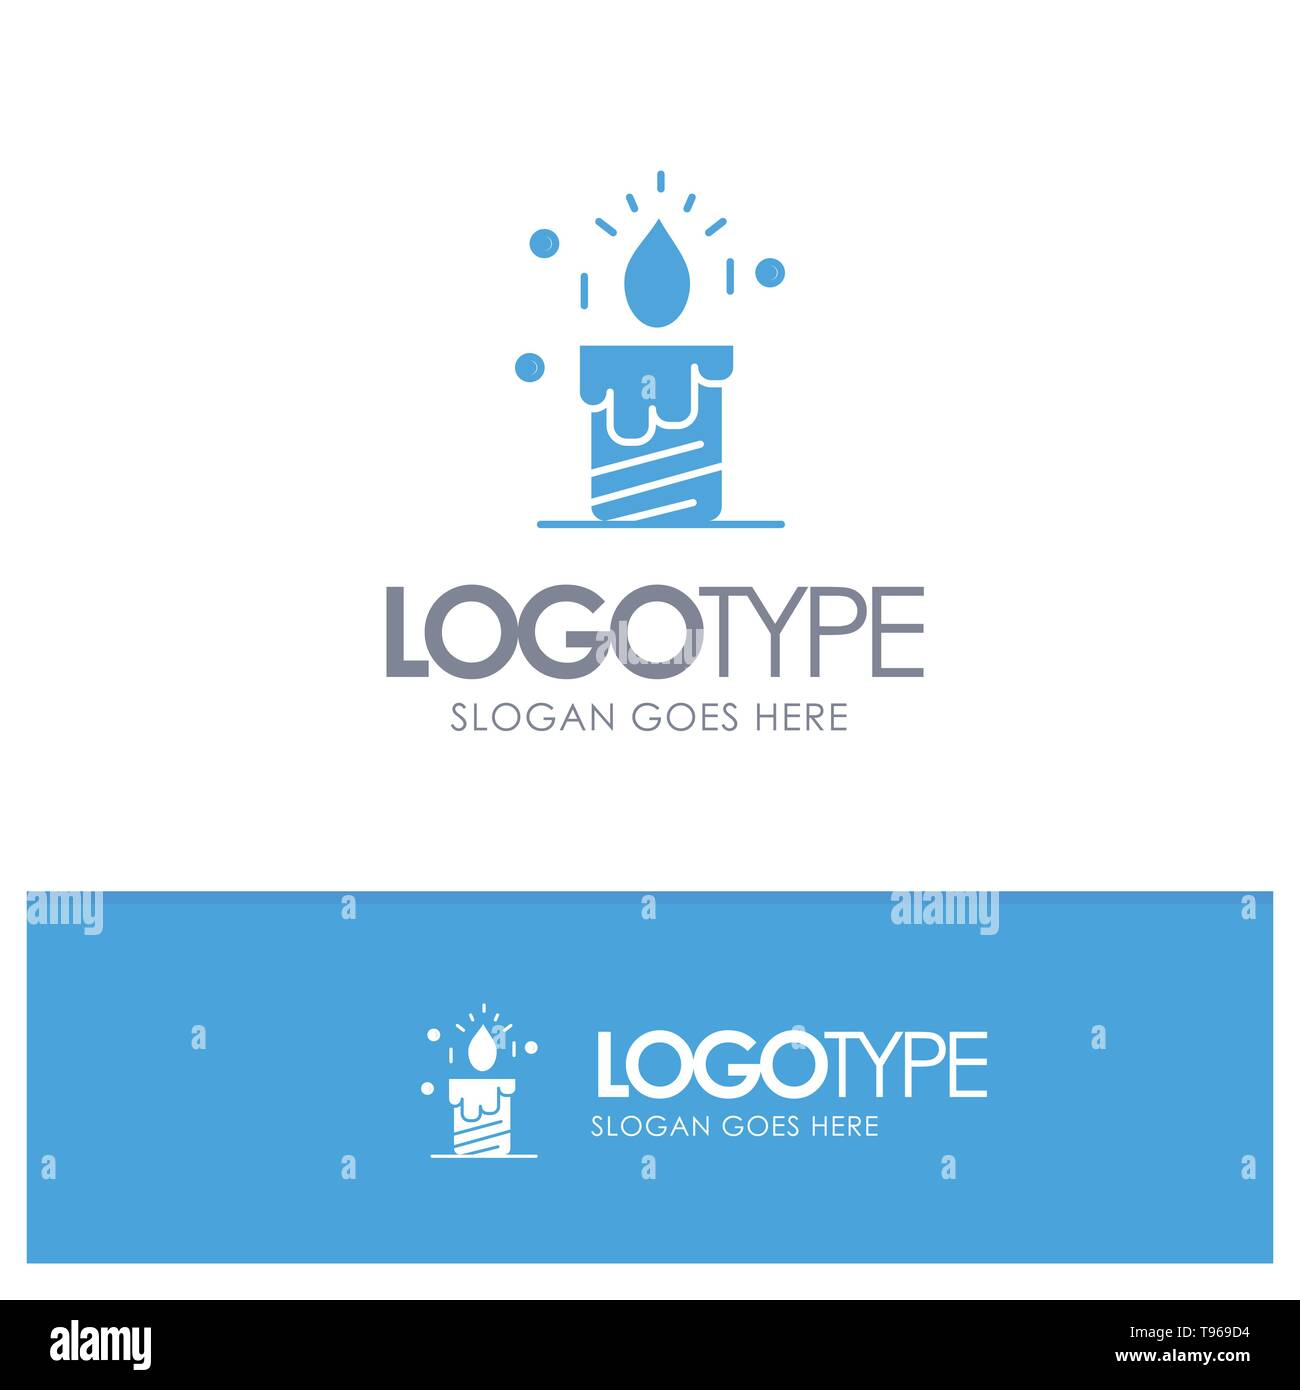 Candle, Light, Wedding, Love Blue Solid Logo with place for tagline - Stock Image